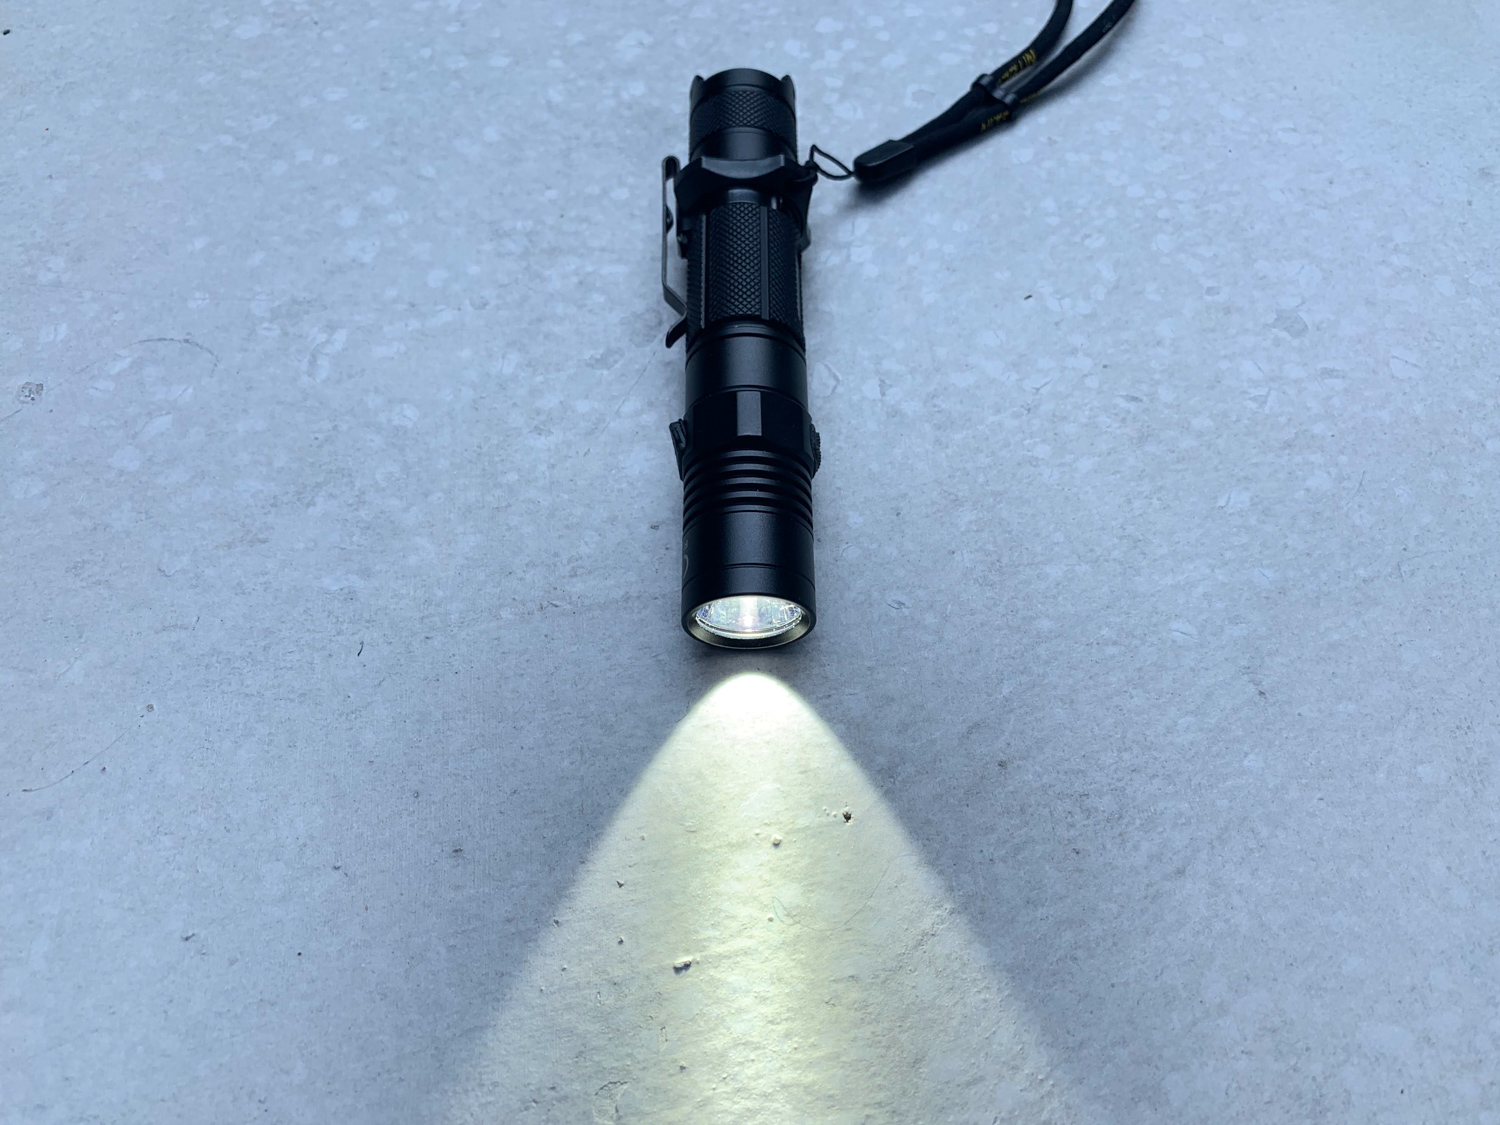 This rechargeable flashlight lets you charge it with just a micro-USB cable.